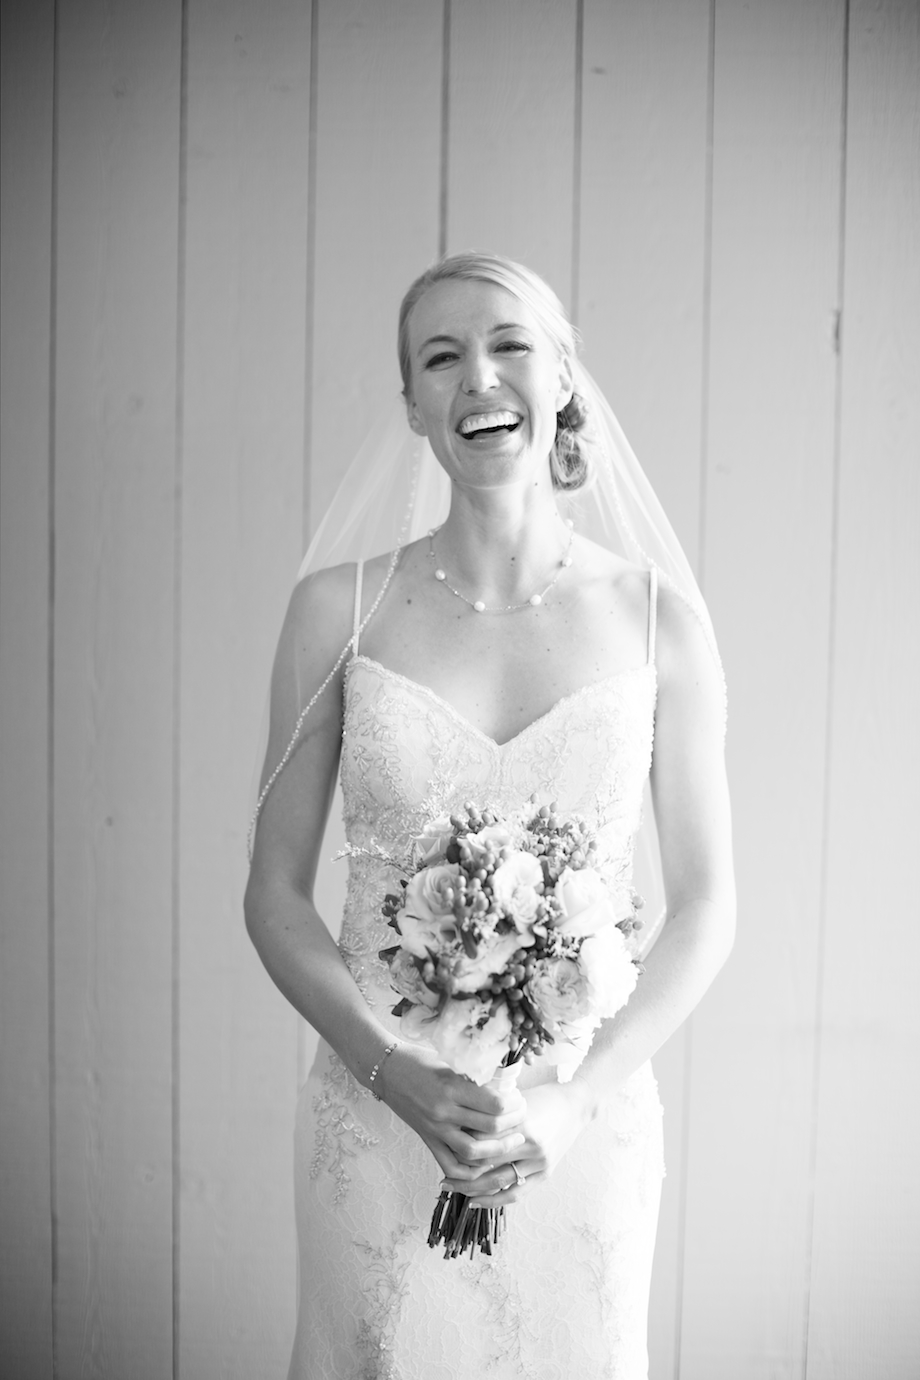 natural editorial style wedding portrait bride